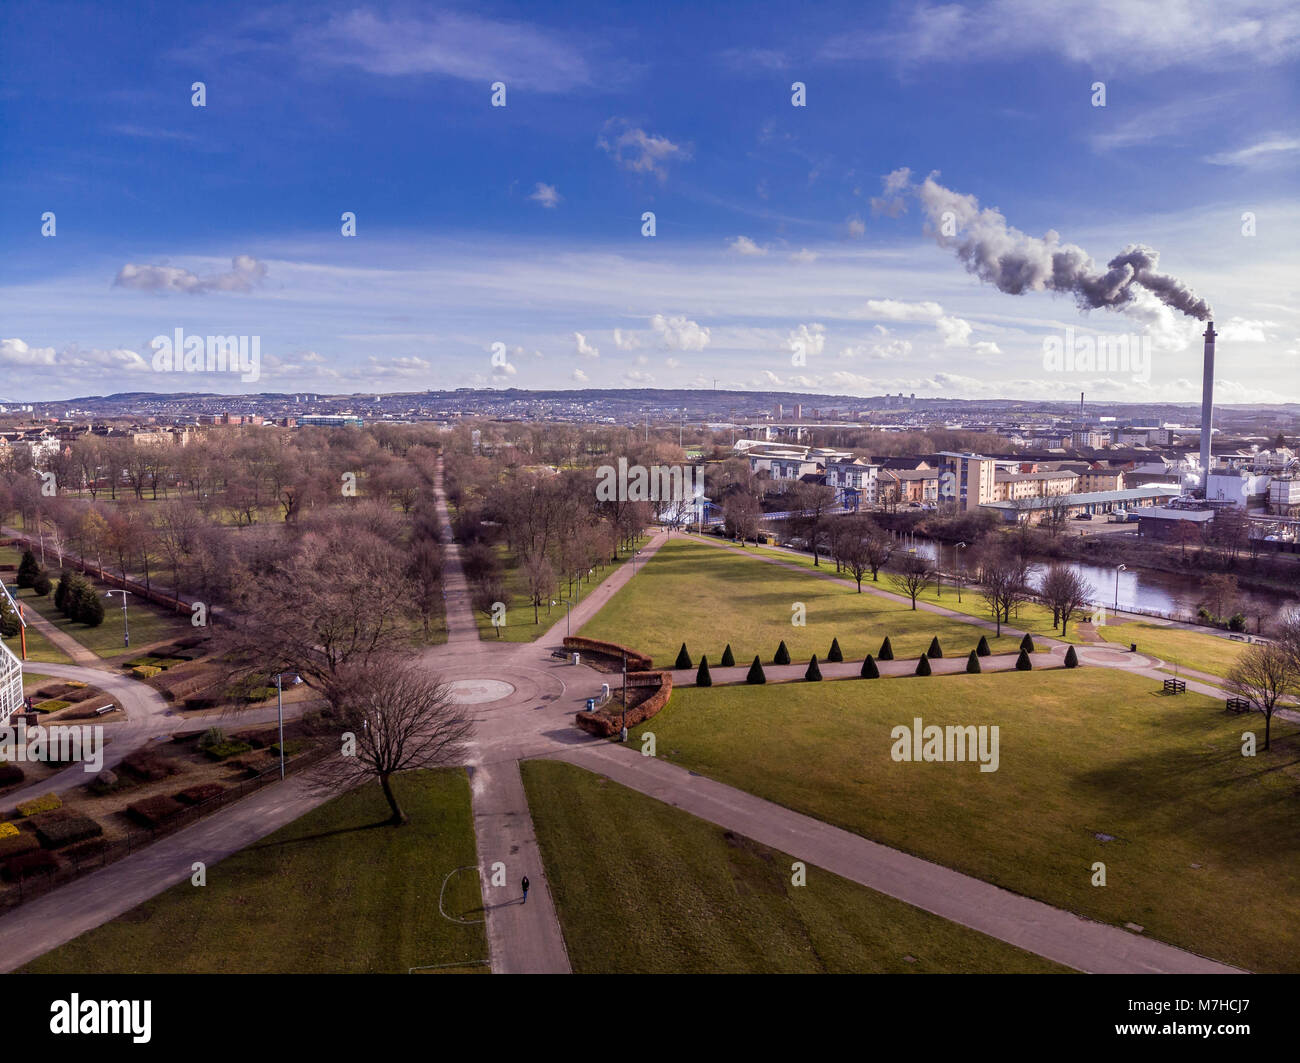 Glasgow a modern city from a different angle of this beautiful modern city in Scotland UK - Stock Image